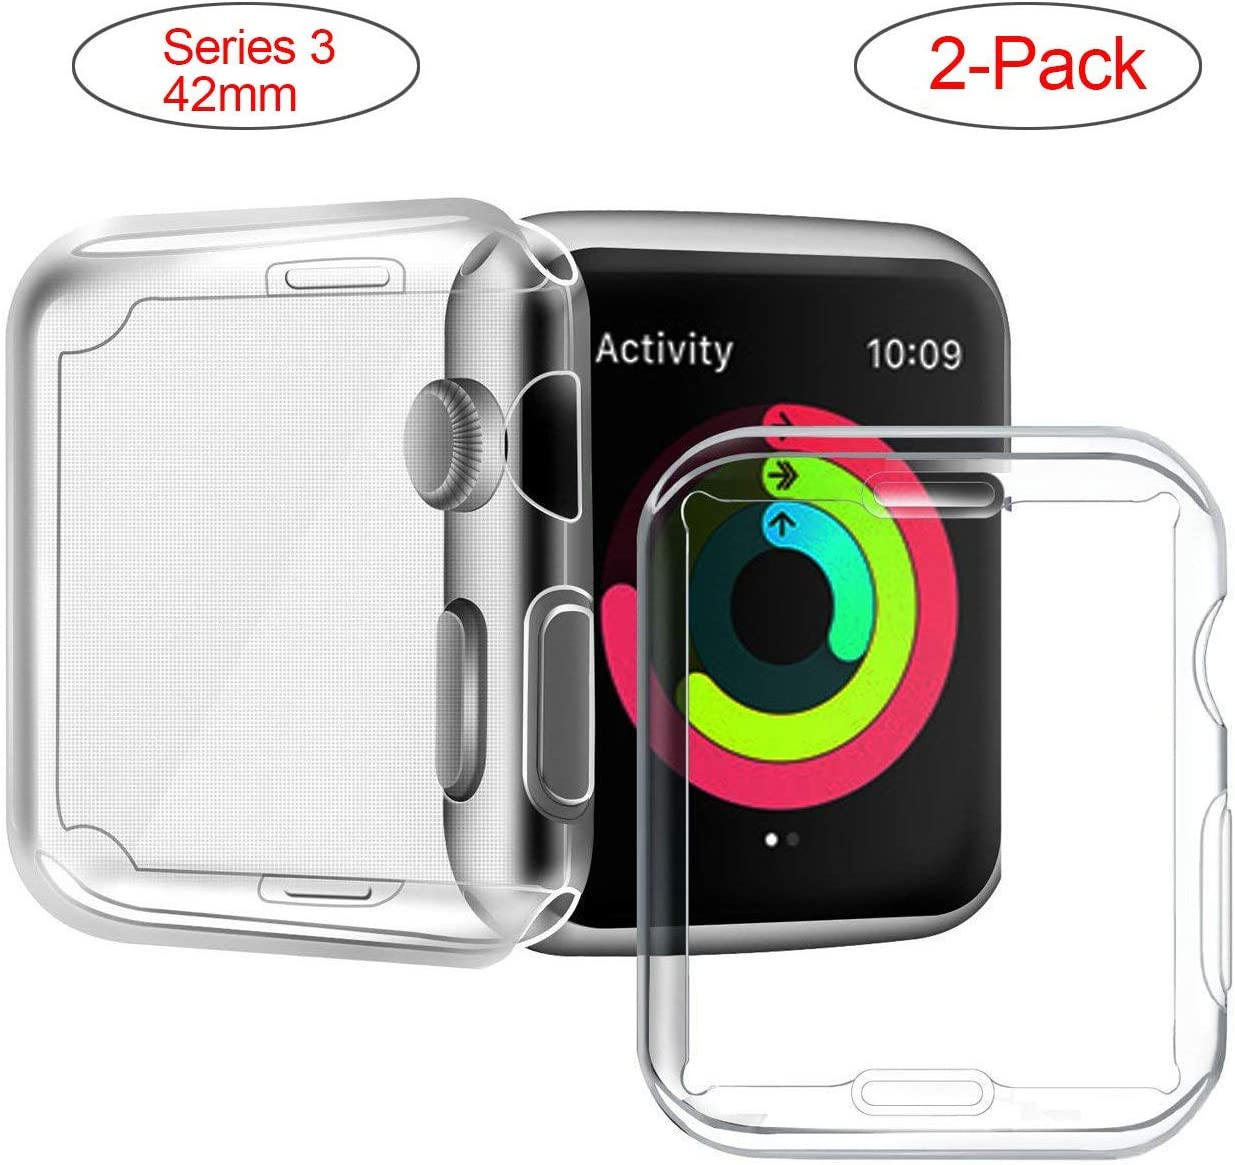 Marphar Series 3/2 42mm Case Compatible with Apple Watch Screen Protector, Overall Protective Case TPU High Definition Clear Ultra-Thin Cover Compatible with iWatch Case Series 3/2 (2 Pack)